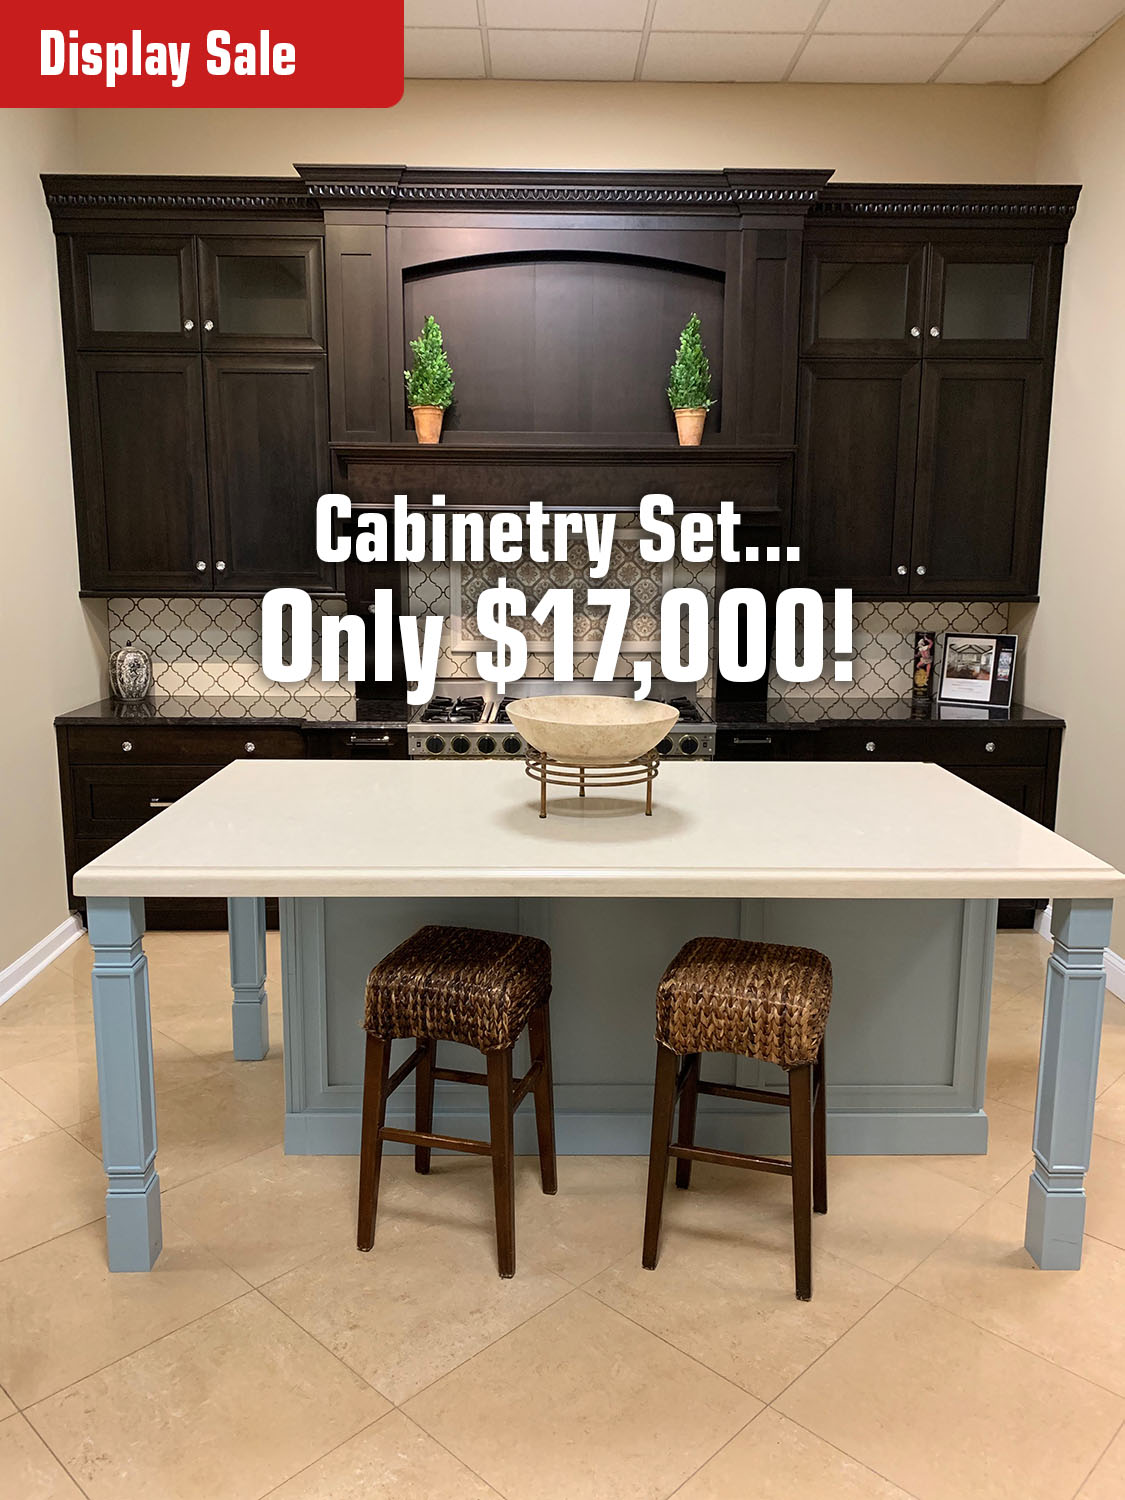 Other Cabinetry and Displays on Sale